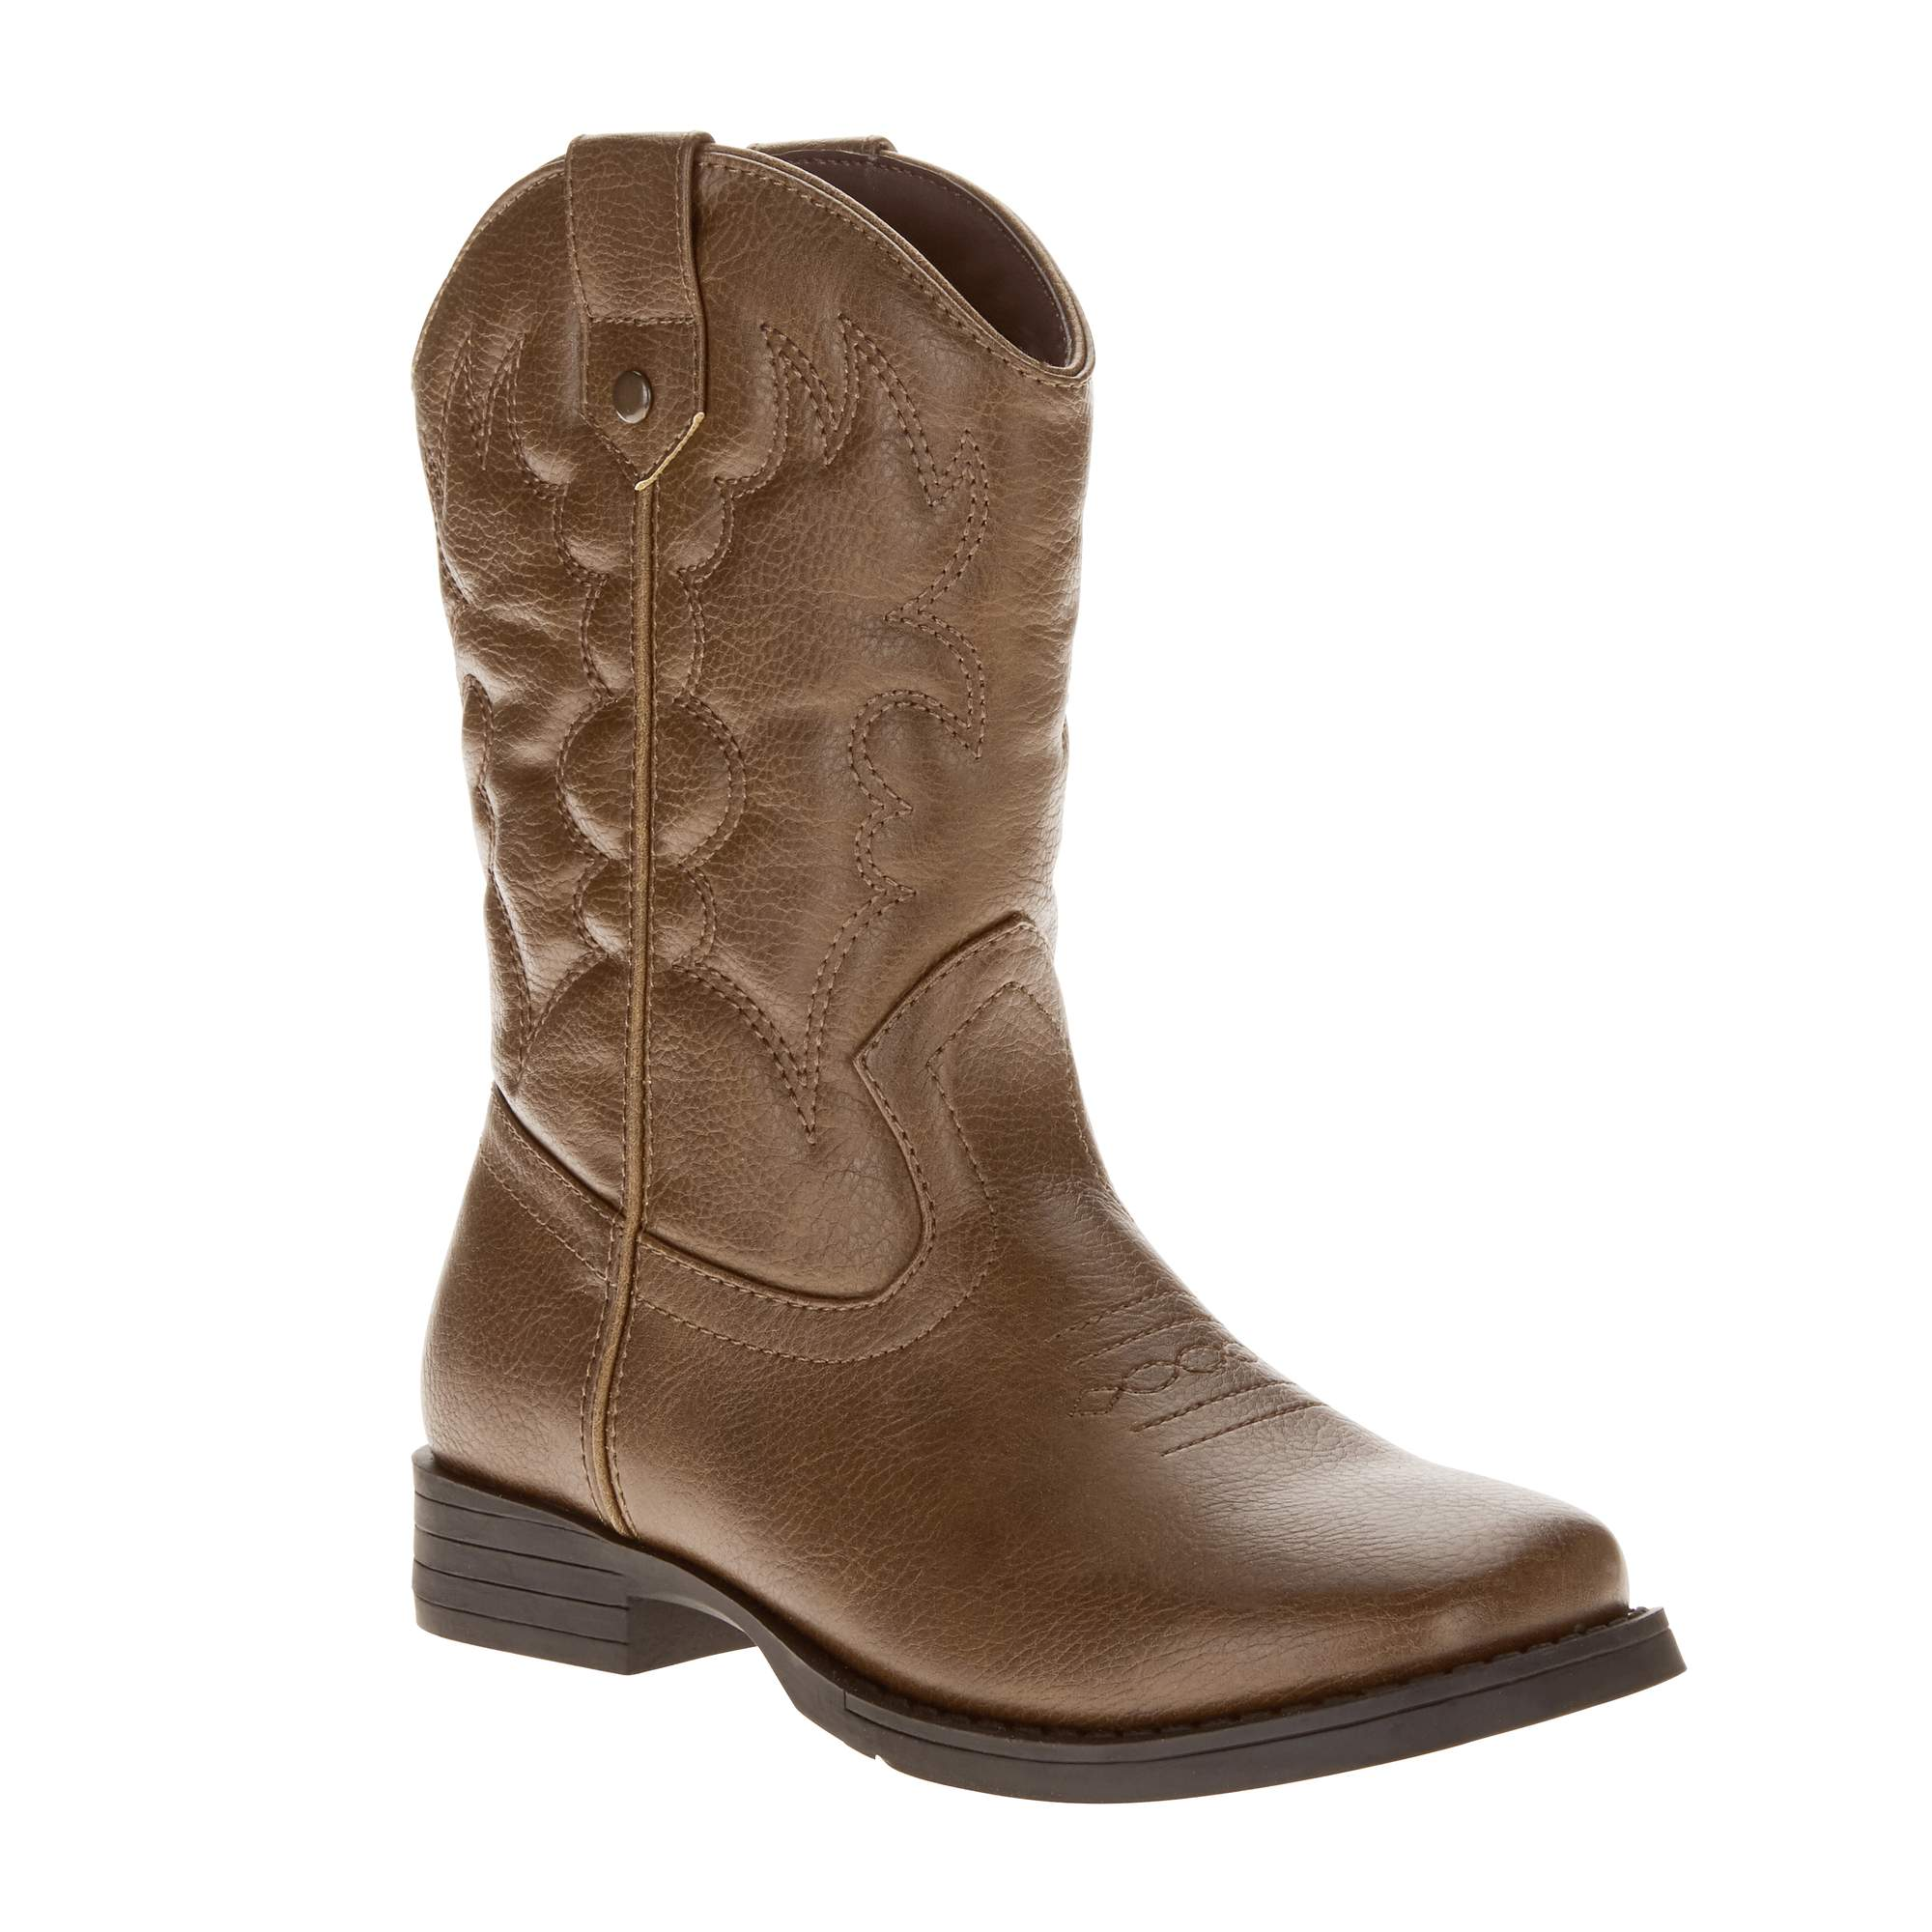 Image of Faded Glory Boys' Cowboy Boot